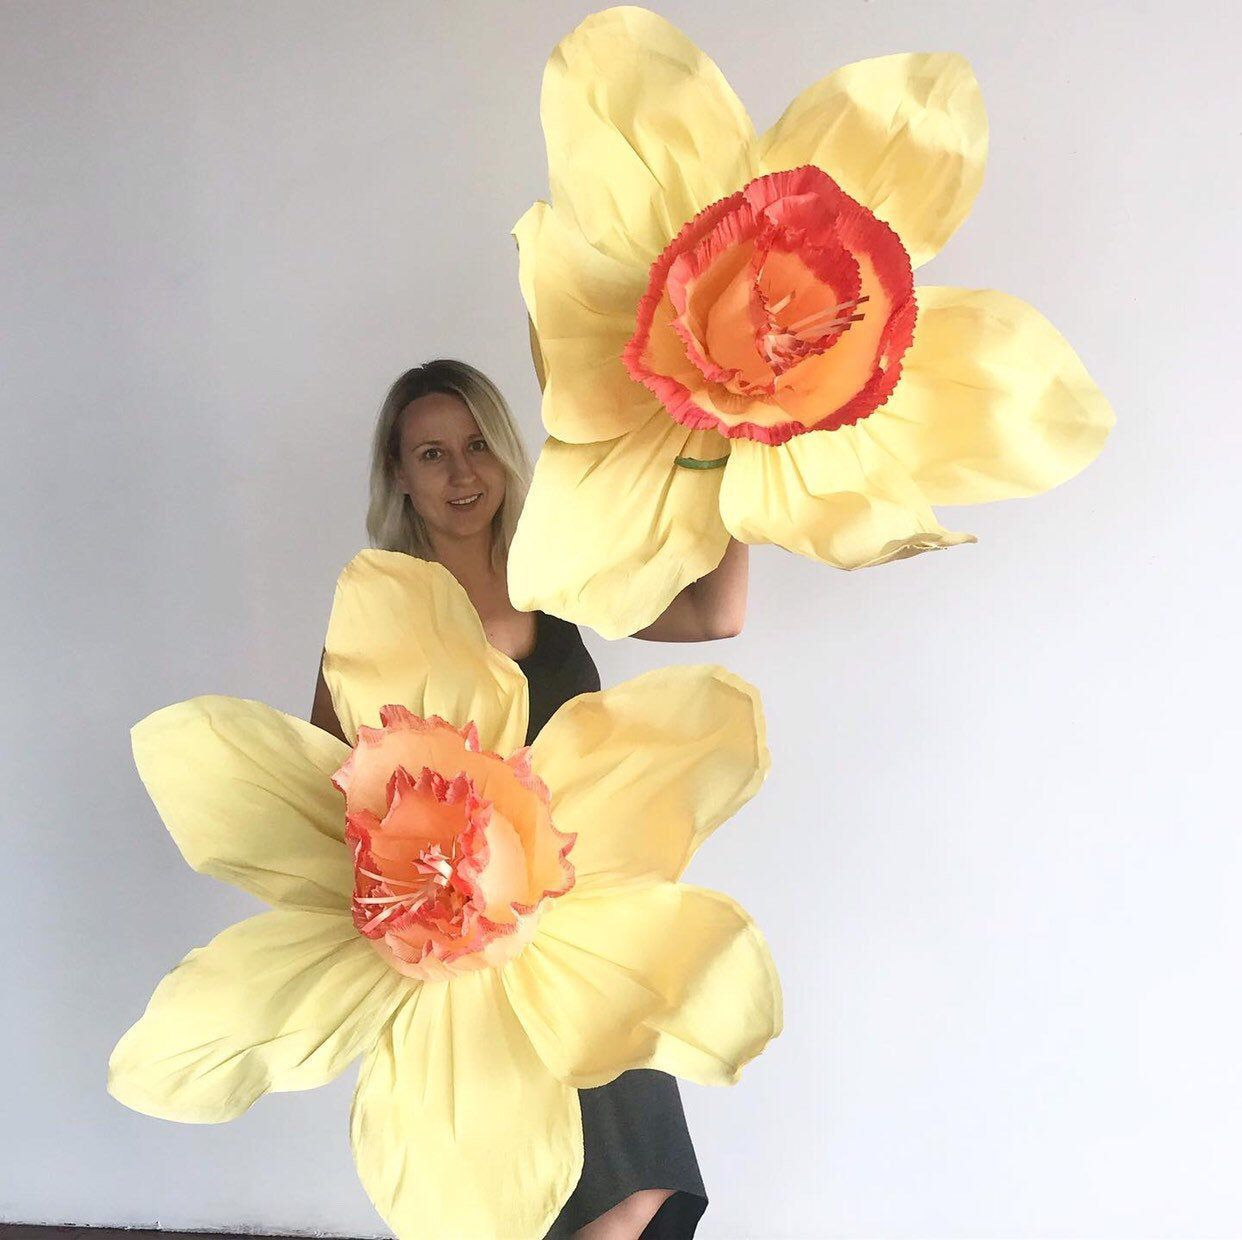 Large paper flower, Giant paper flower, big paper flower for any occasion or projects Nrcisus or daffodil #constructionpaperflowers Excited to share this item from my #etsy shop: Large paper flower, Giant paper flower, big paper flower for any occasion or projects Nrcisus or daffodil #constructionpaperflowers Large paper flower, Giant paper flower, big paper flower for any occasion or projects Nrcisus or daffodil #constructionpaperflowers Excited to share this item from my #etsy shop: Large pape #bigpaperflowers